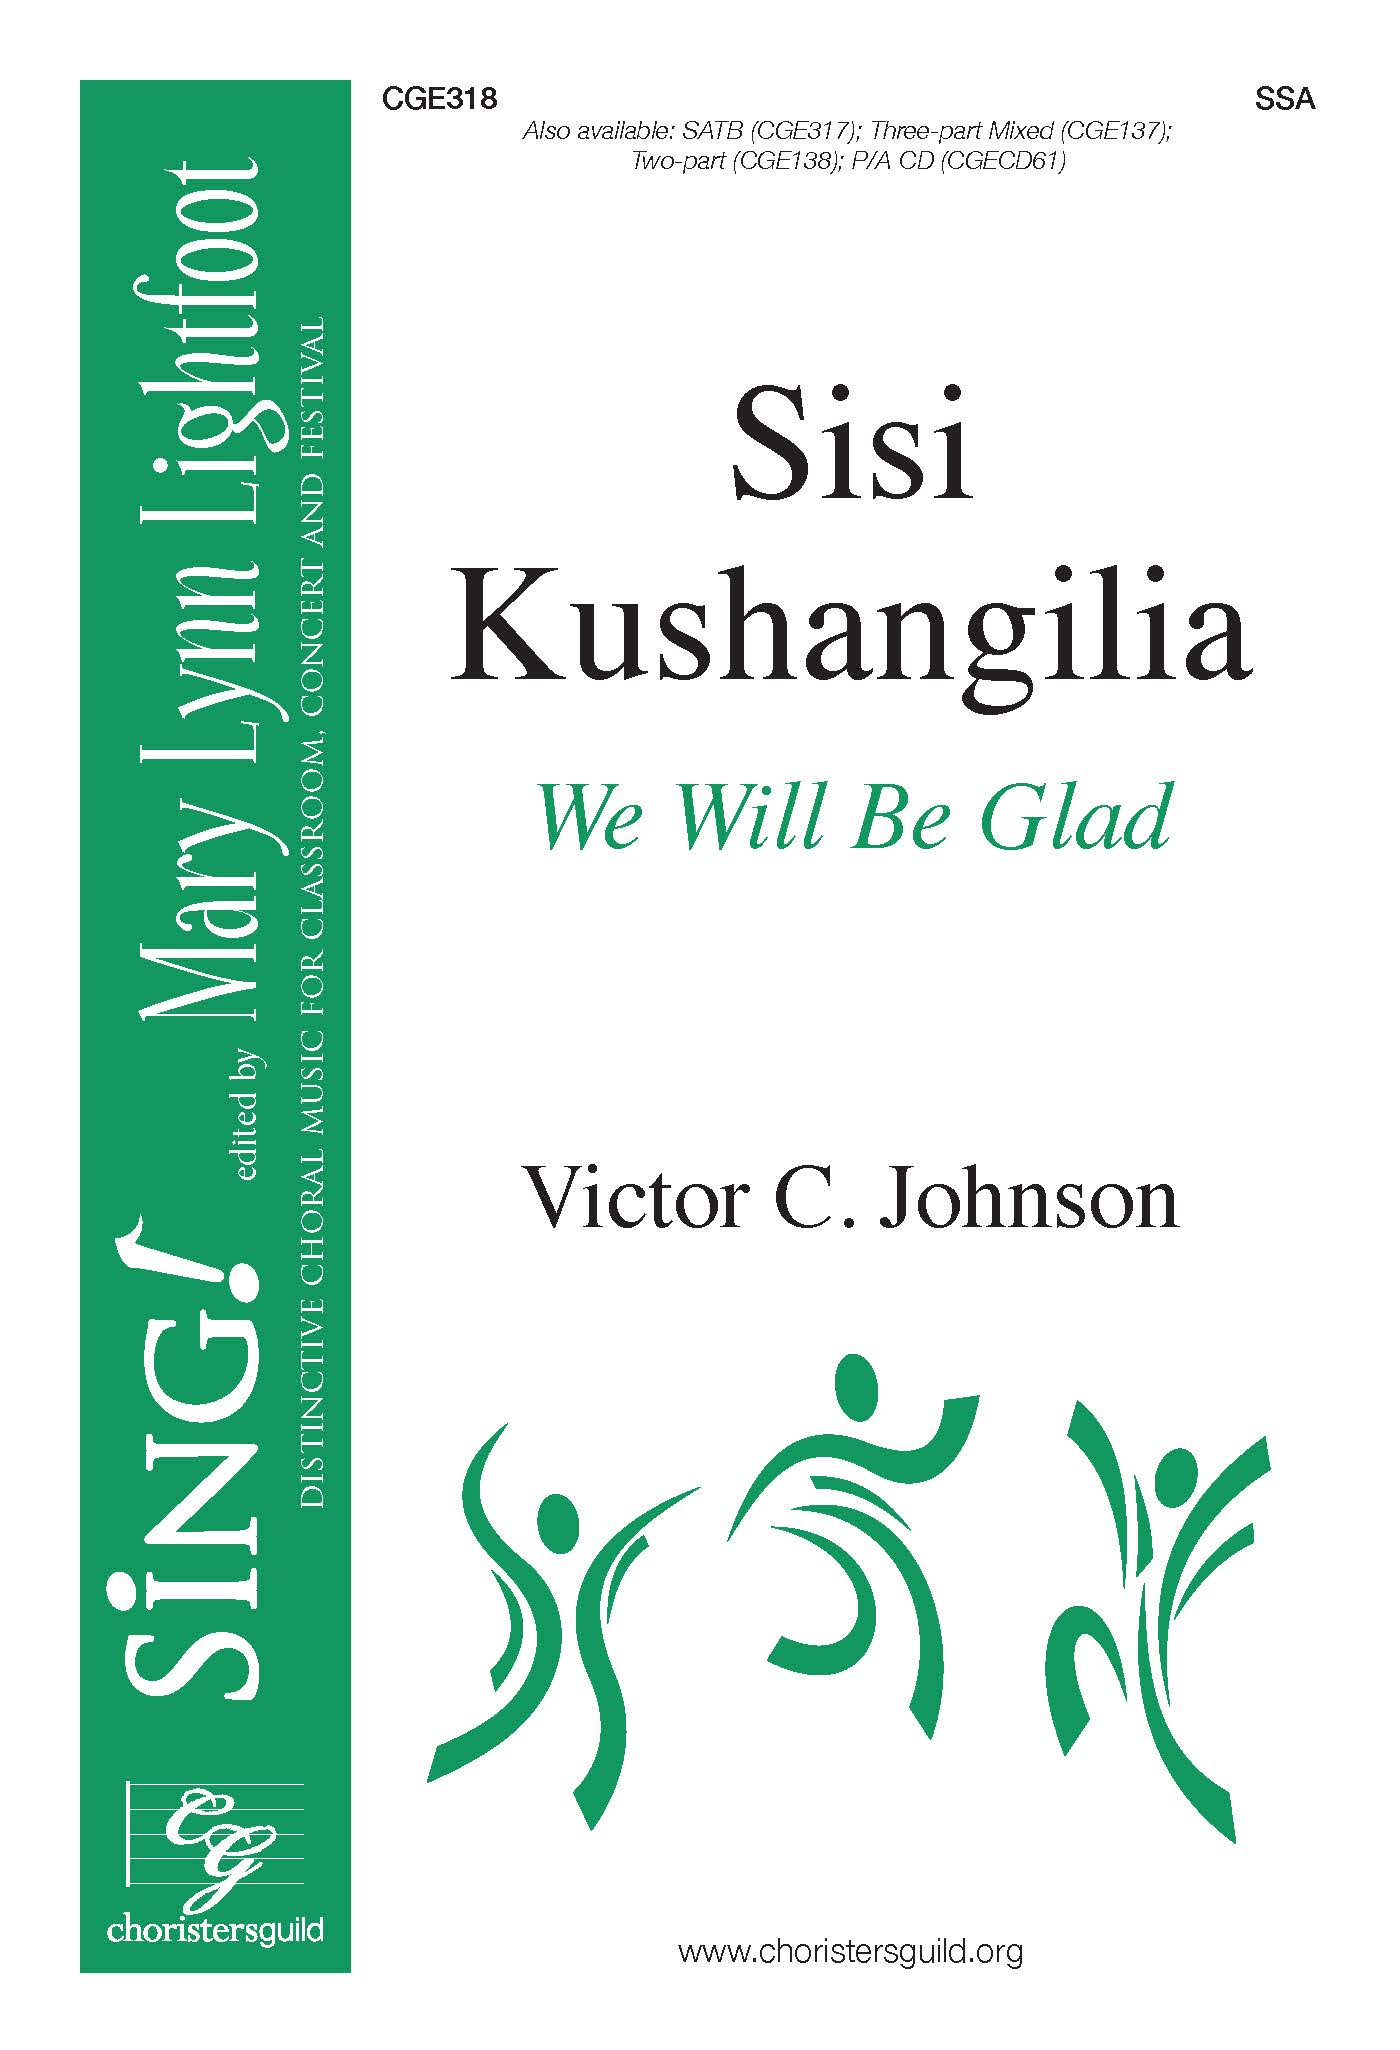 Sisi Kushangilia (We Will Be Glad) - SSA